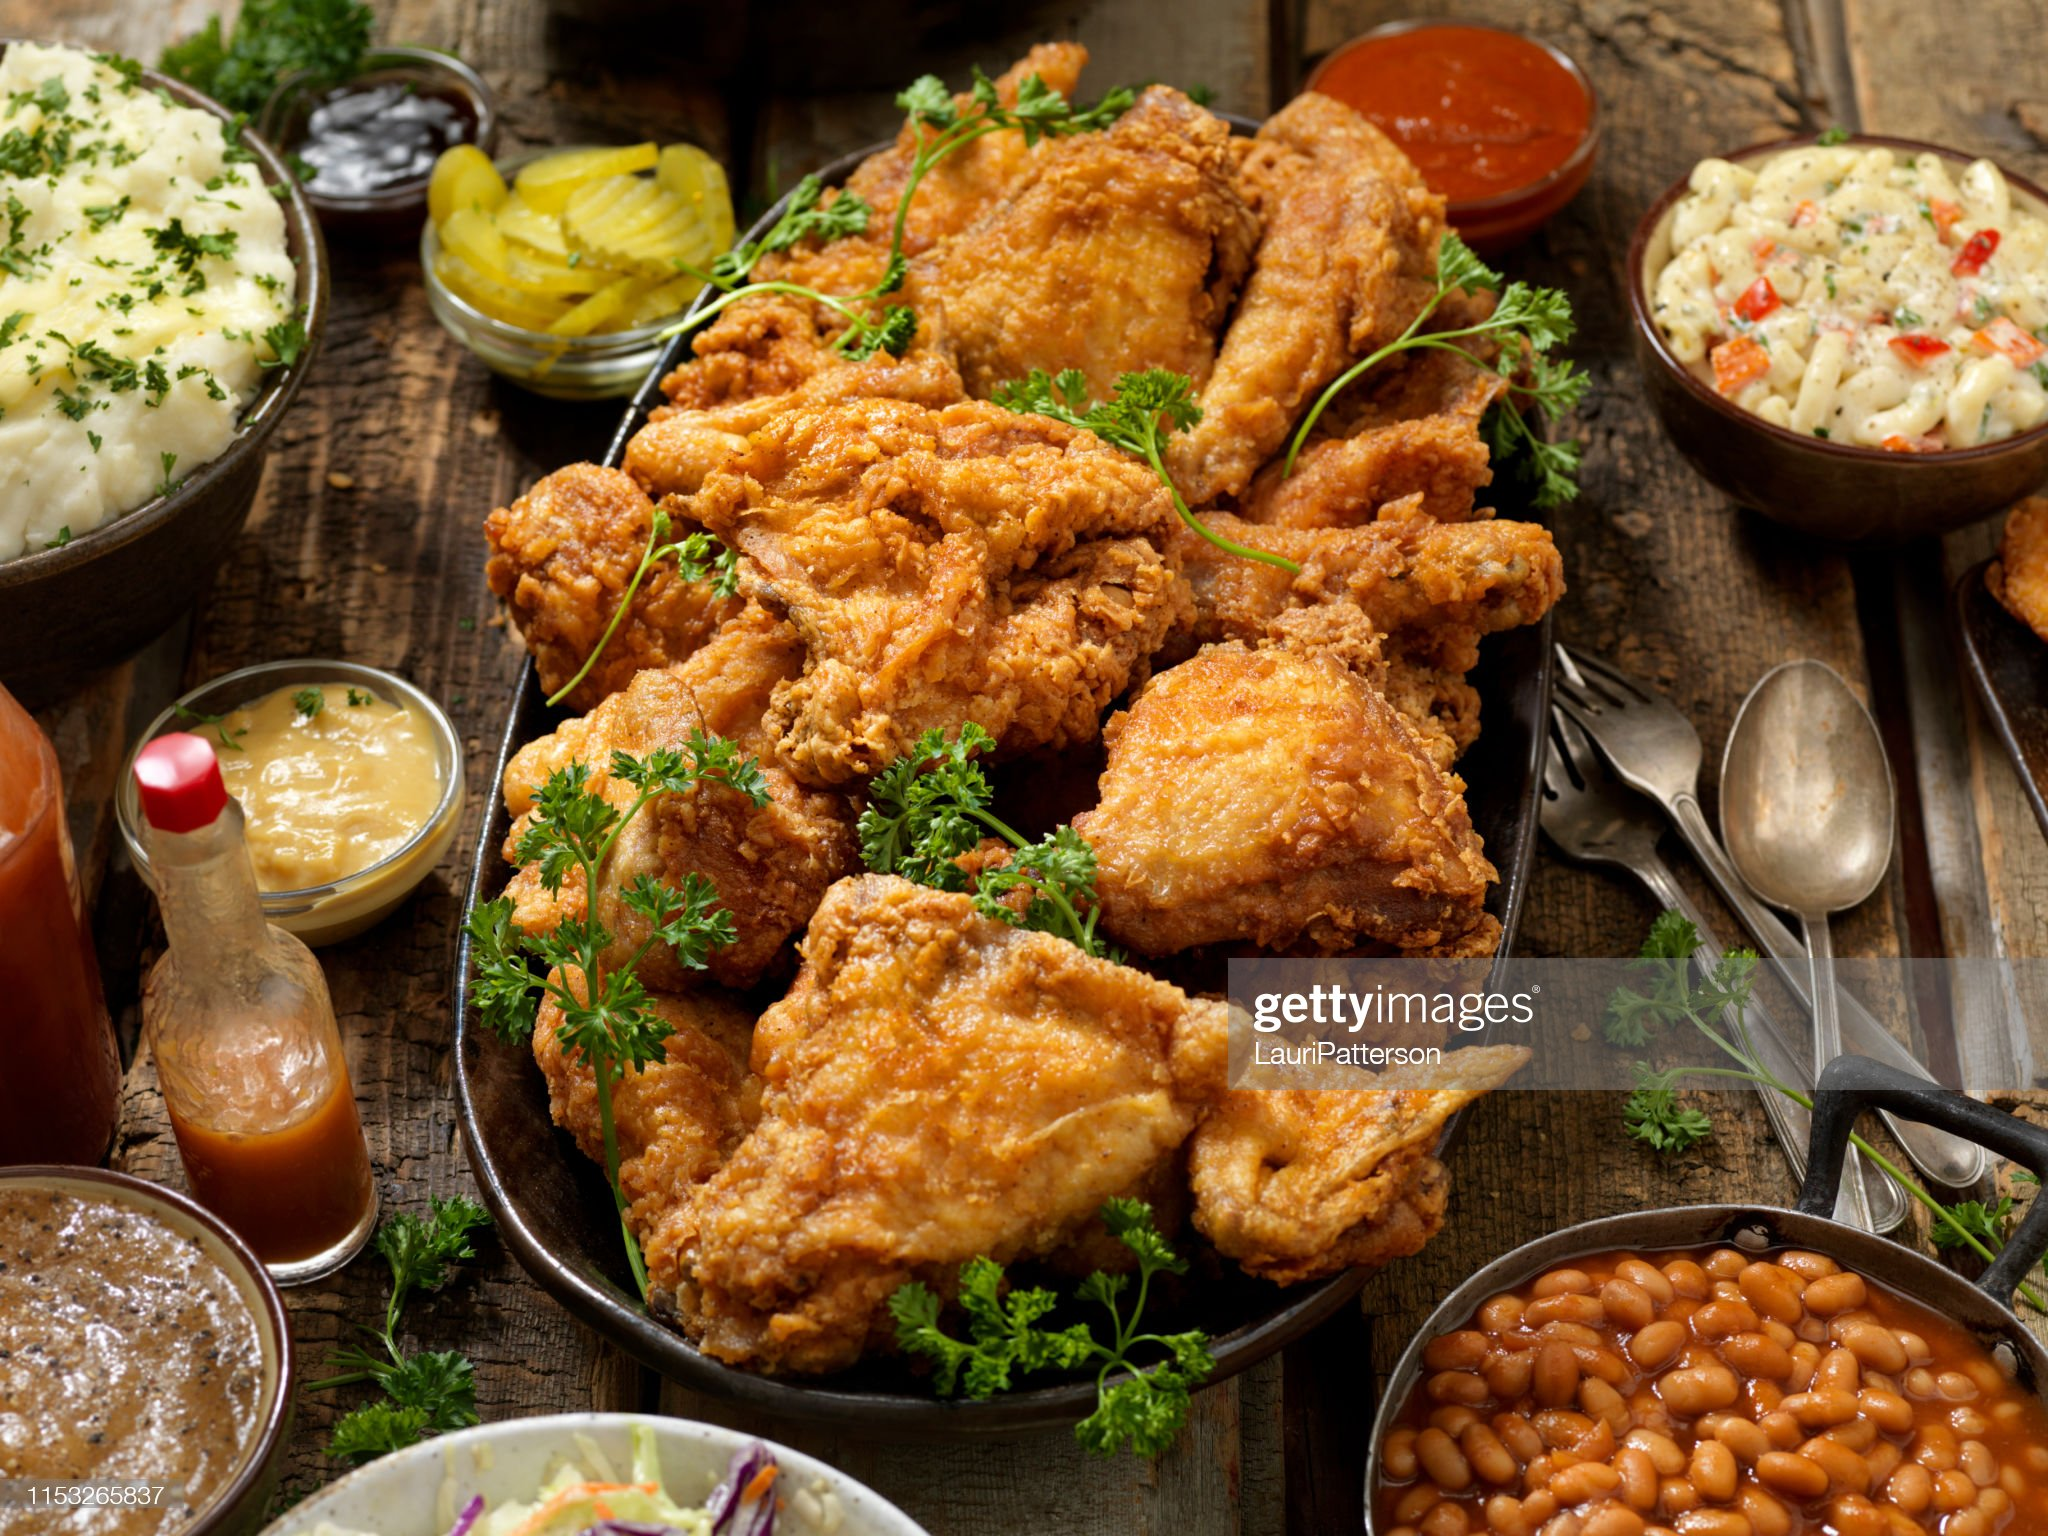 fried-chicken-feast-picture-id1153265837